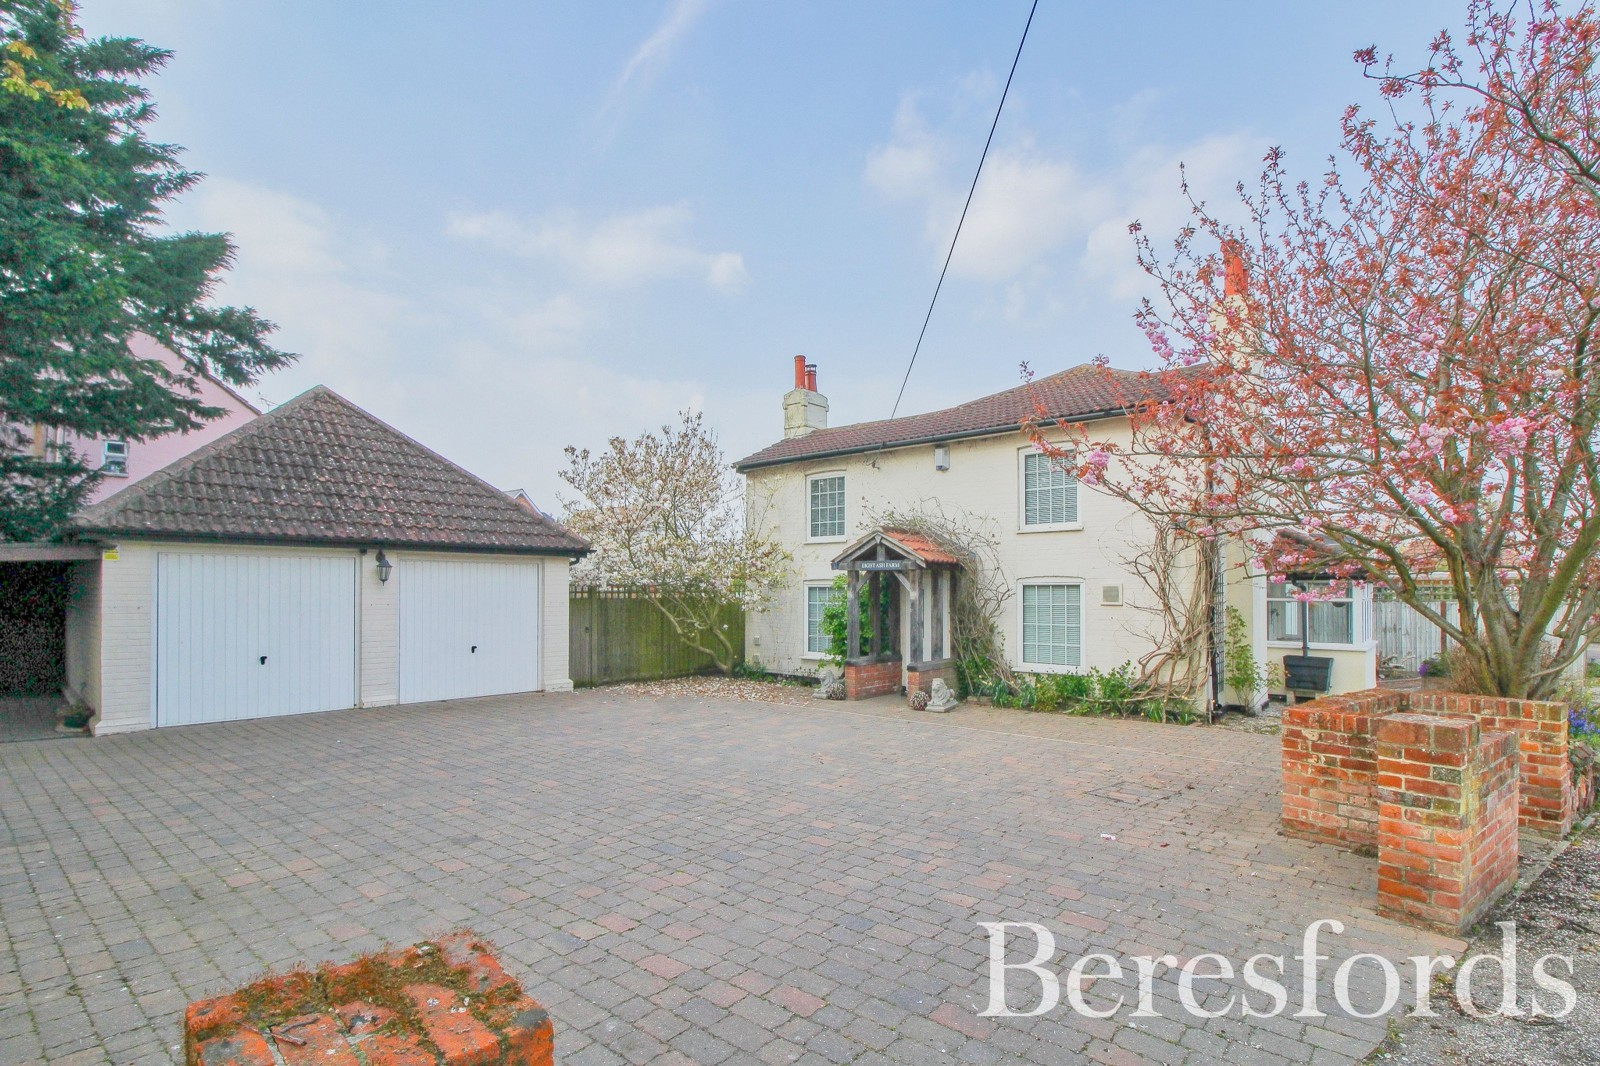 Halstead Road, Eight Ash Green, Colchester, Essex, CO6